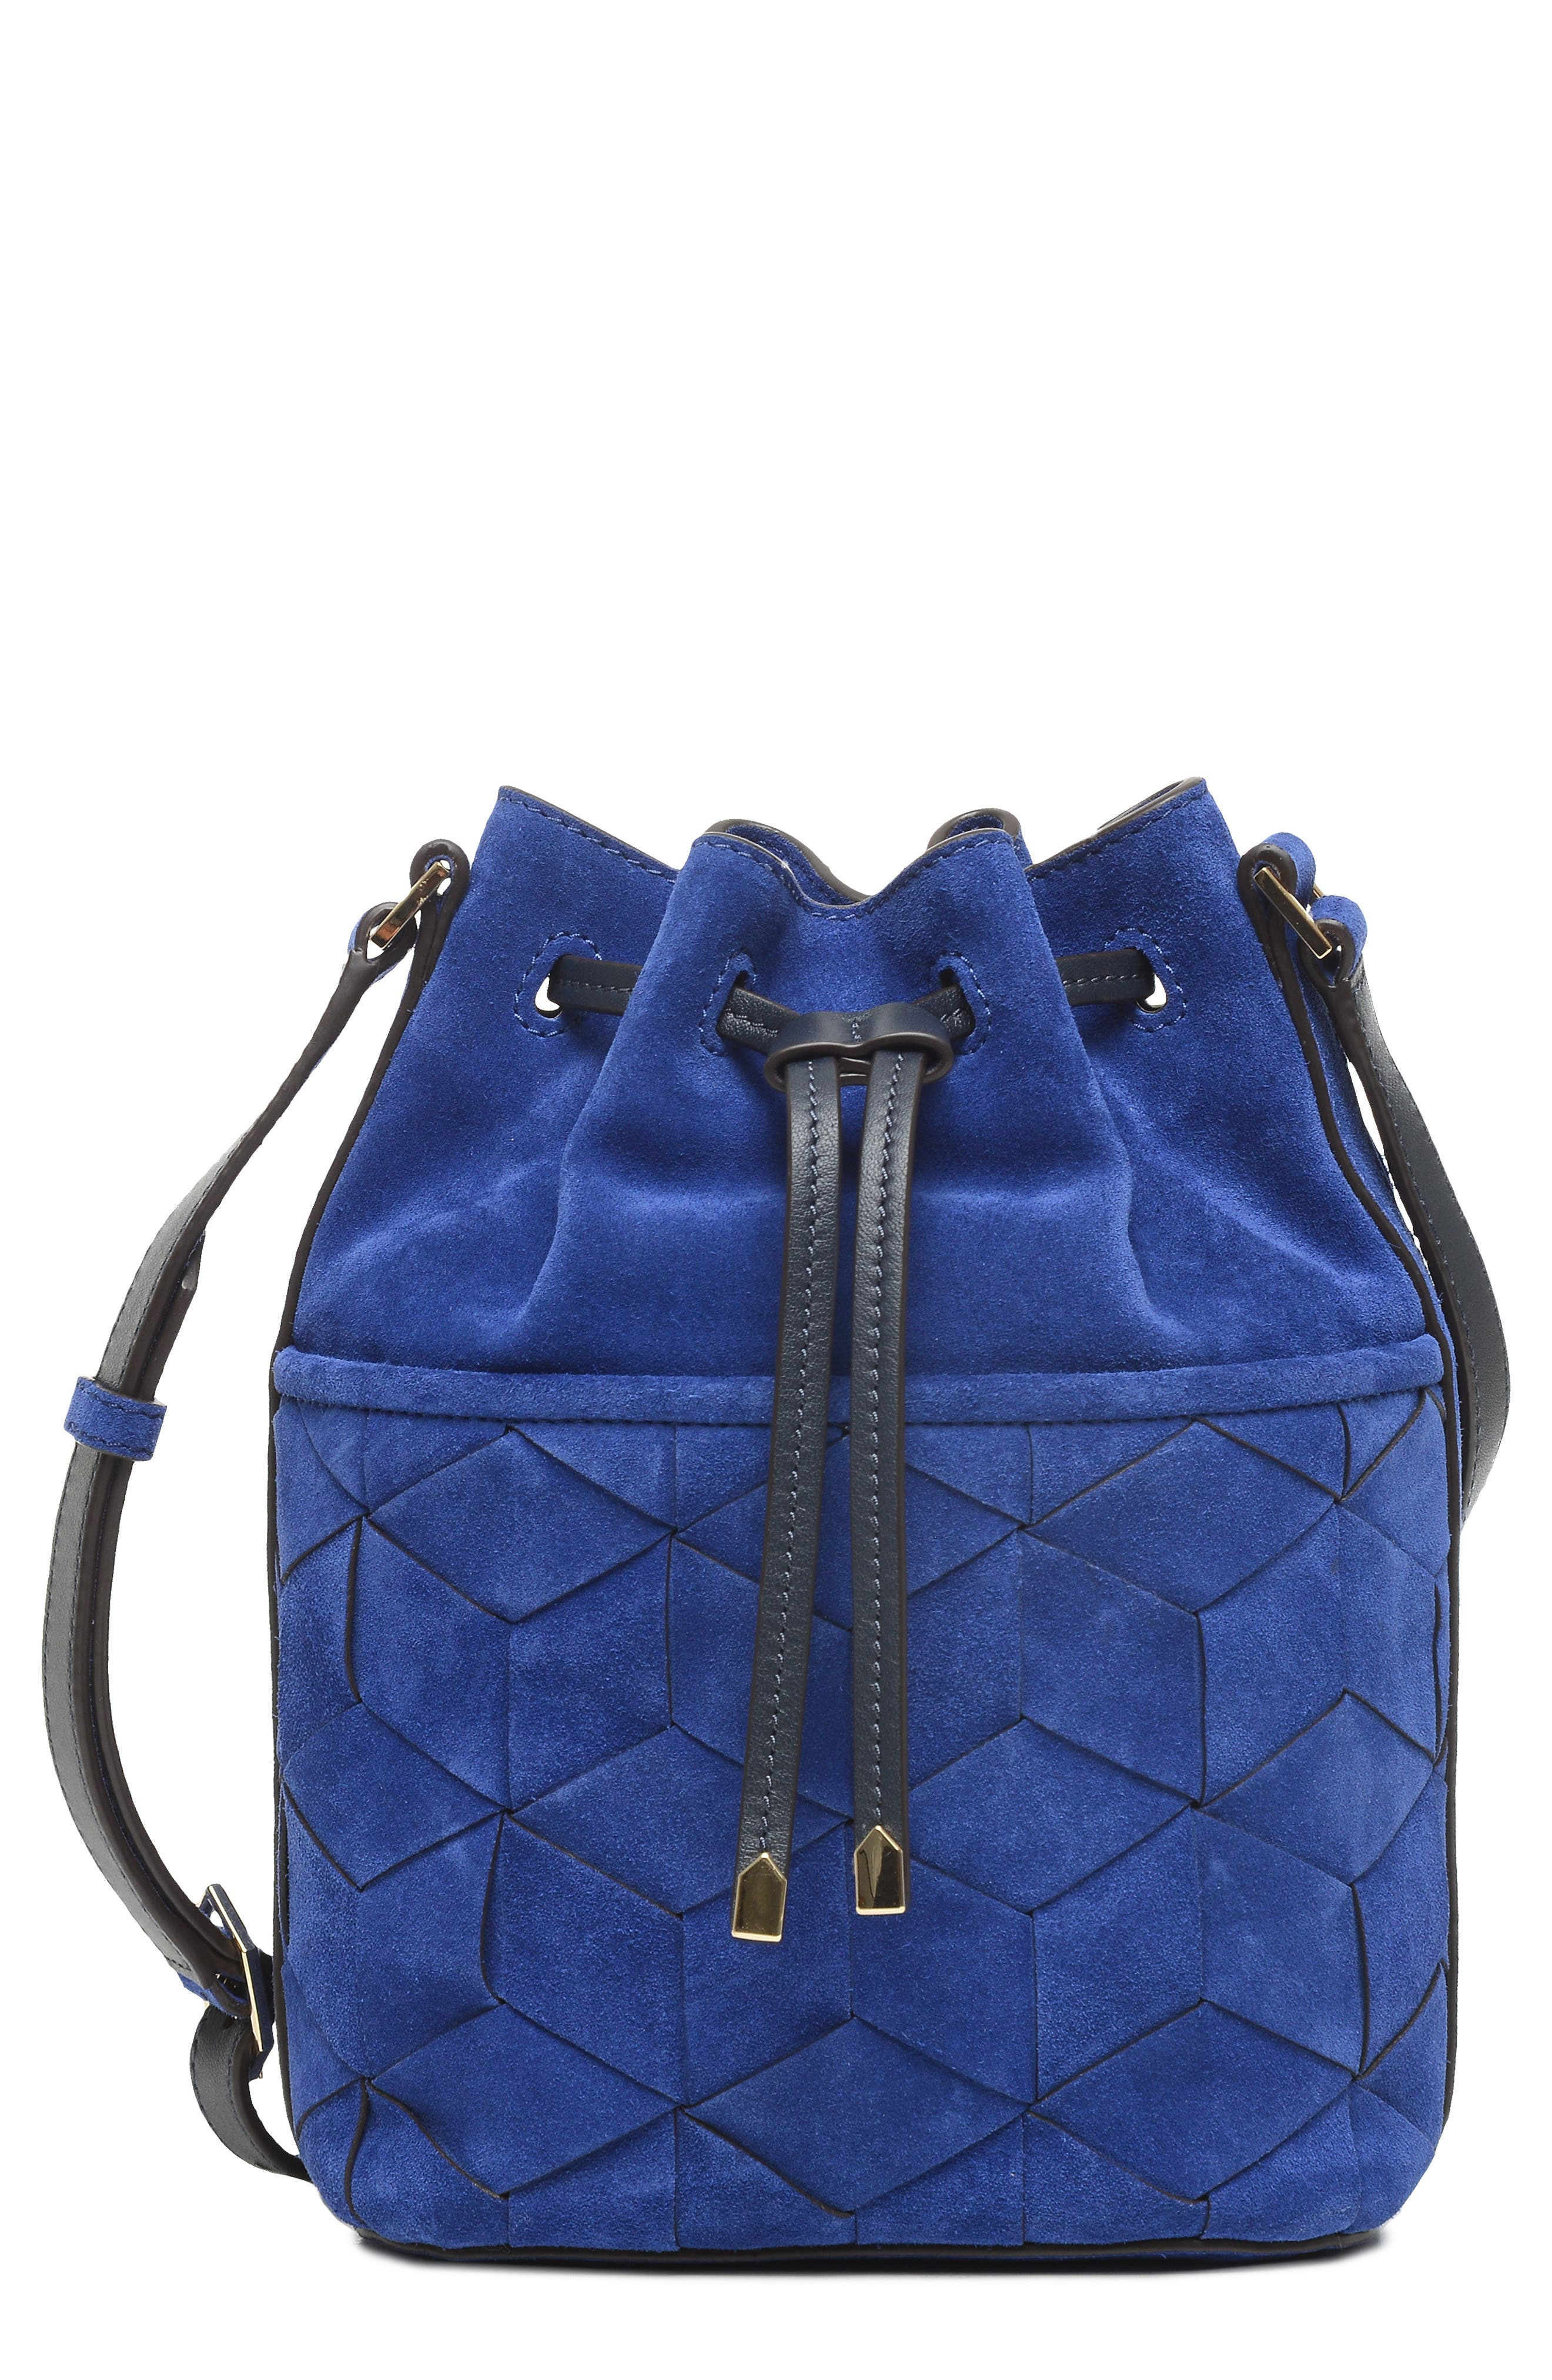 Welden Bags Mini Gallivanter Suede Bucket Bag In Royal